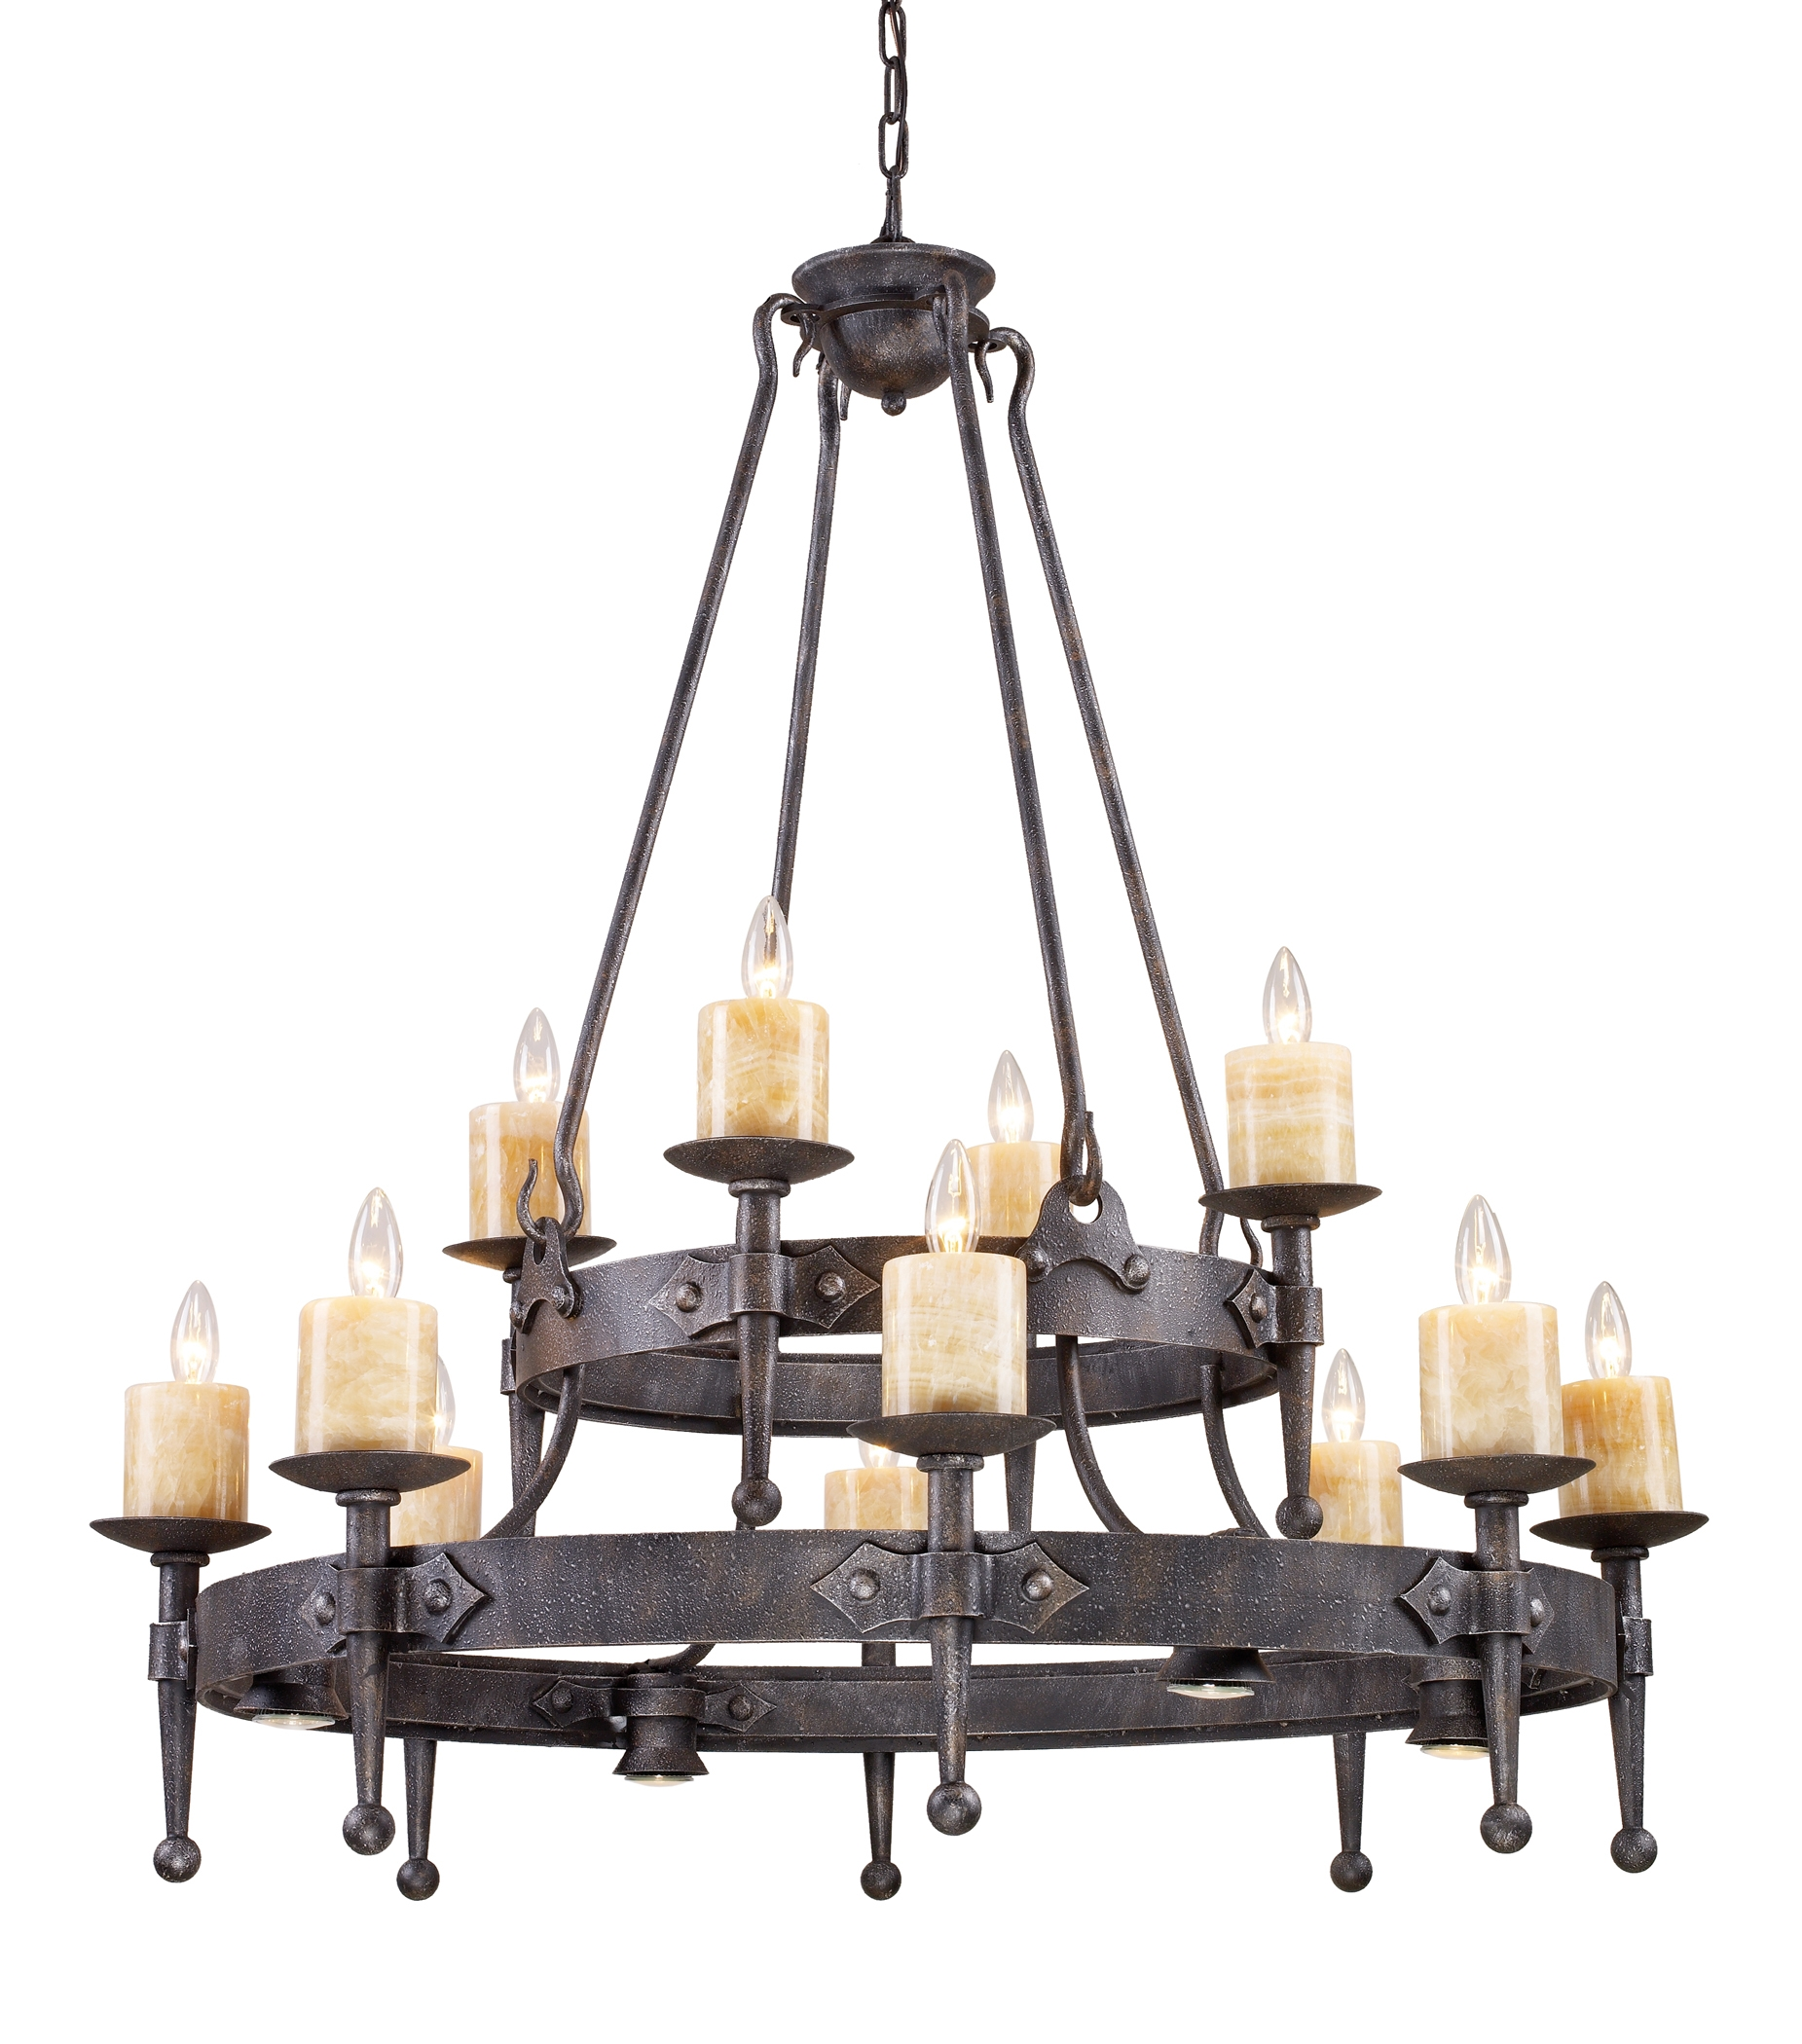 Wrought Iron Chandeliers Rustic Cool On Modern Home Decor Ideas With Regard To Modern Wrought Iron Chandeliers (Image 13 of 15)